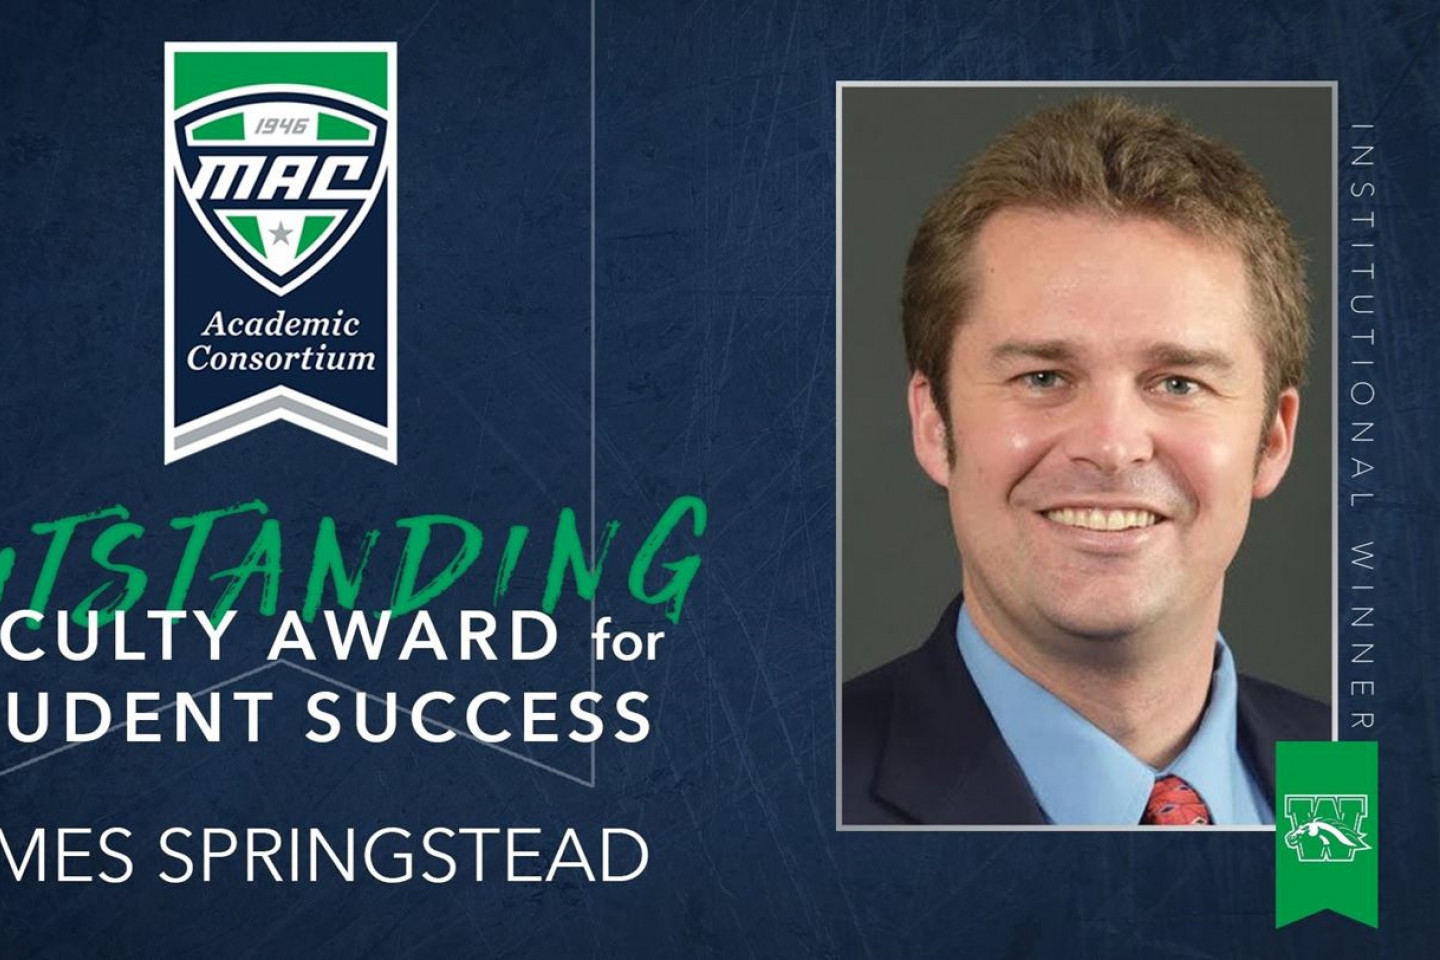 A photo of Dr. James Springstead who won the MAC Outstanding Faculty Award for Student Success.